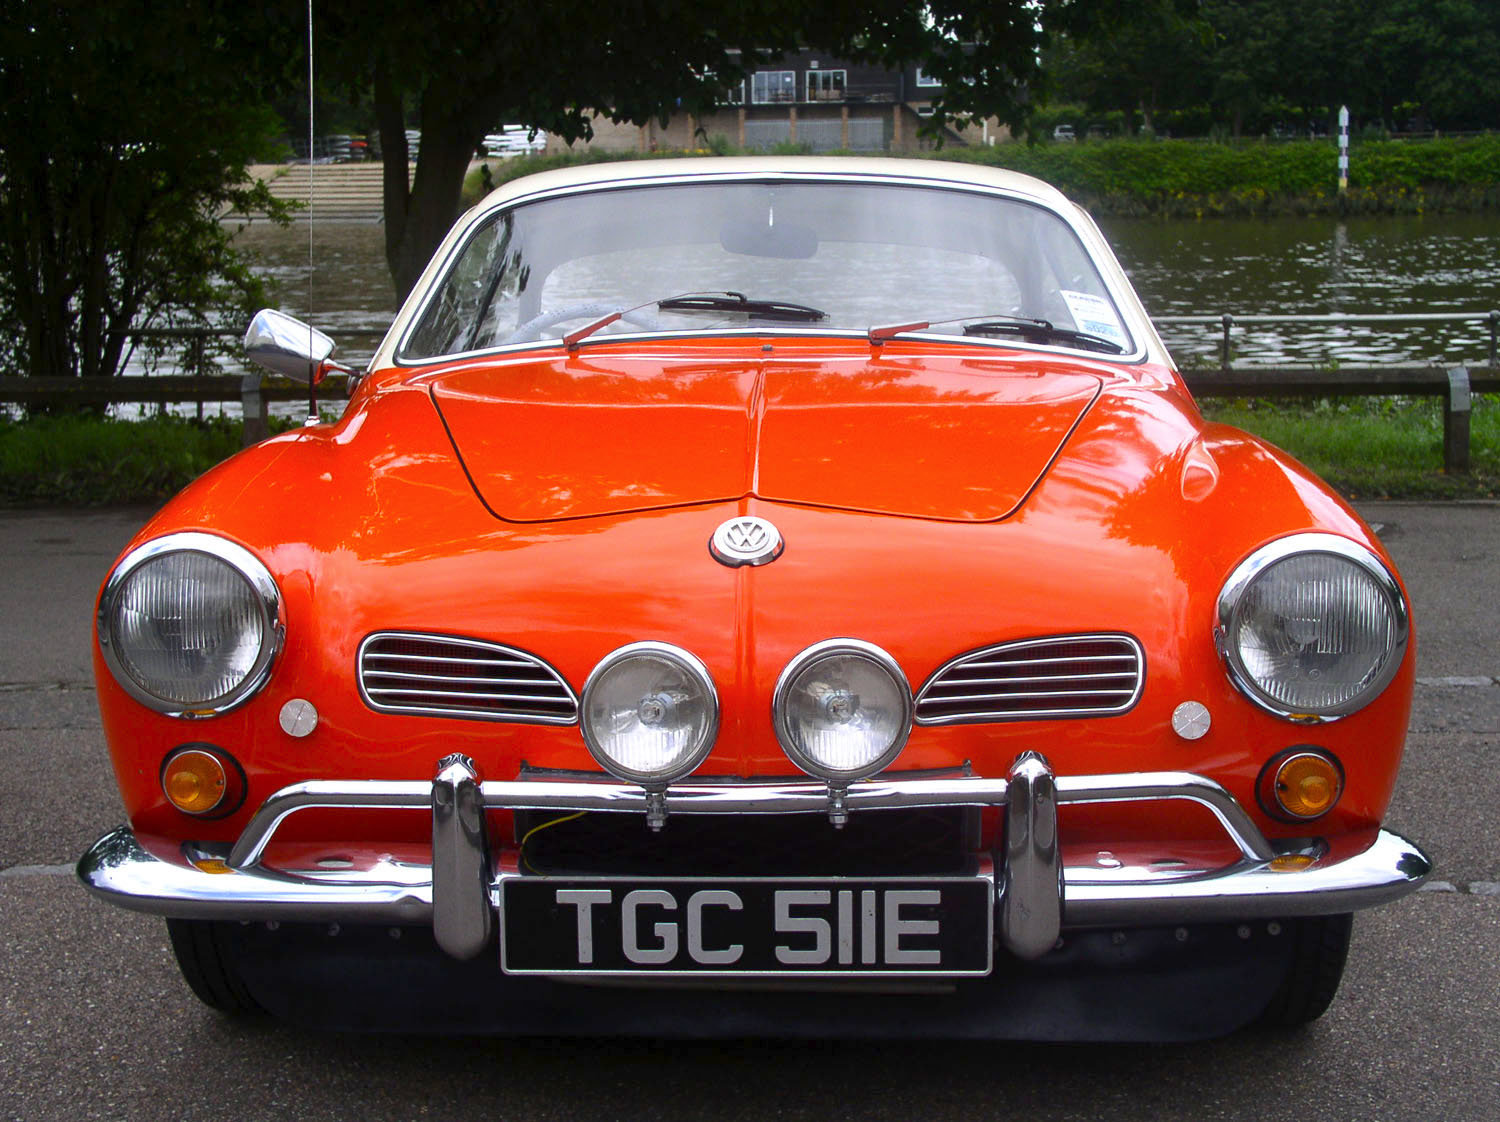 1967 Volkswagen Type 14 Karmann Ghia Coupe - Original RHD For Sale (picture 6 of 6)